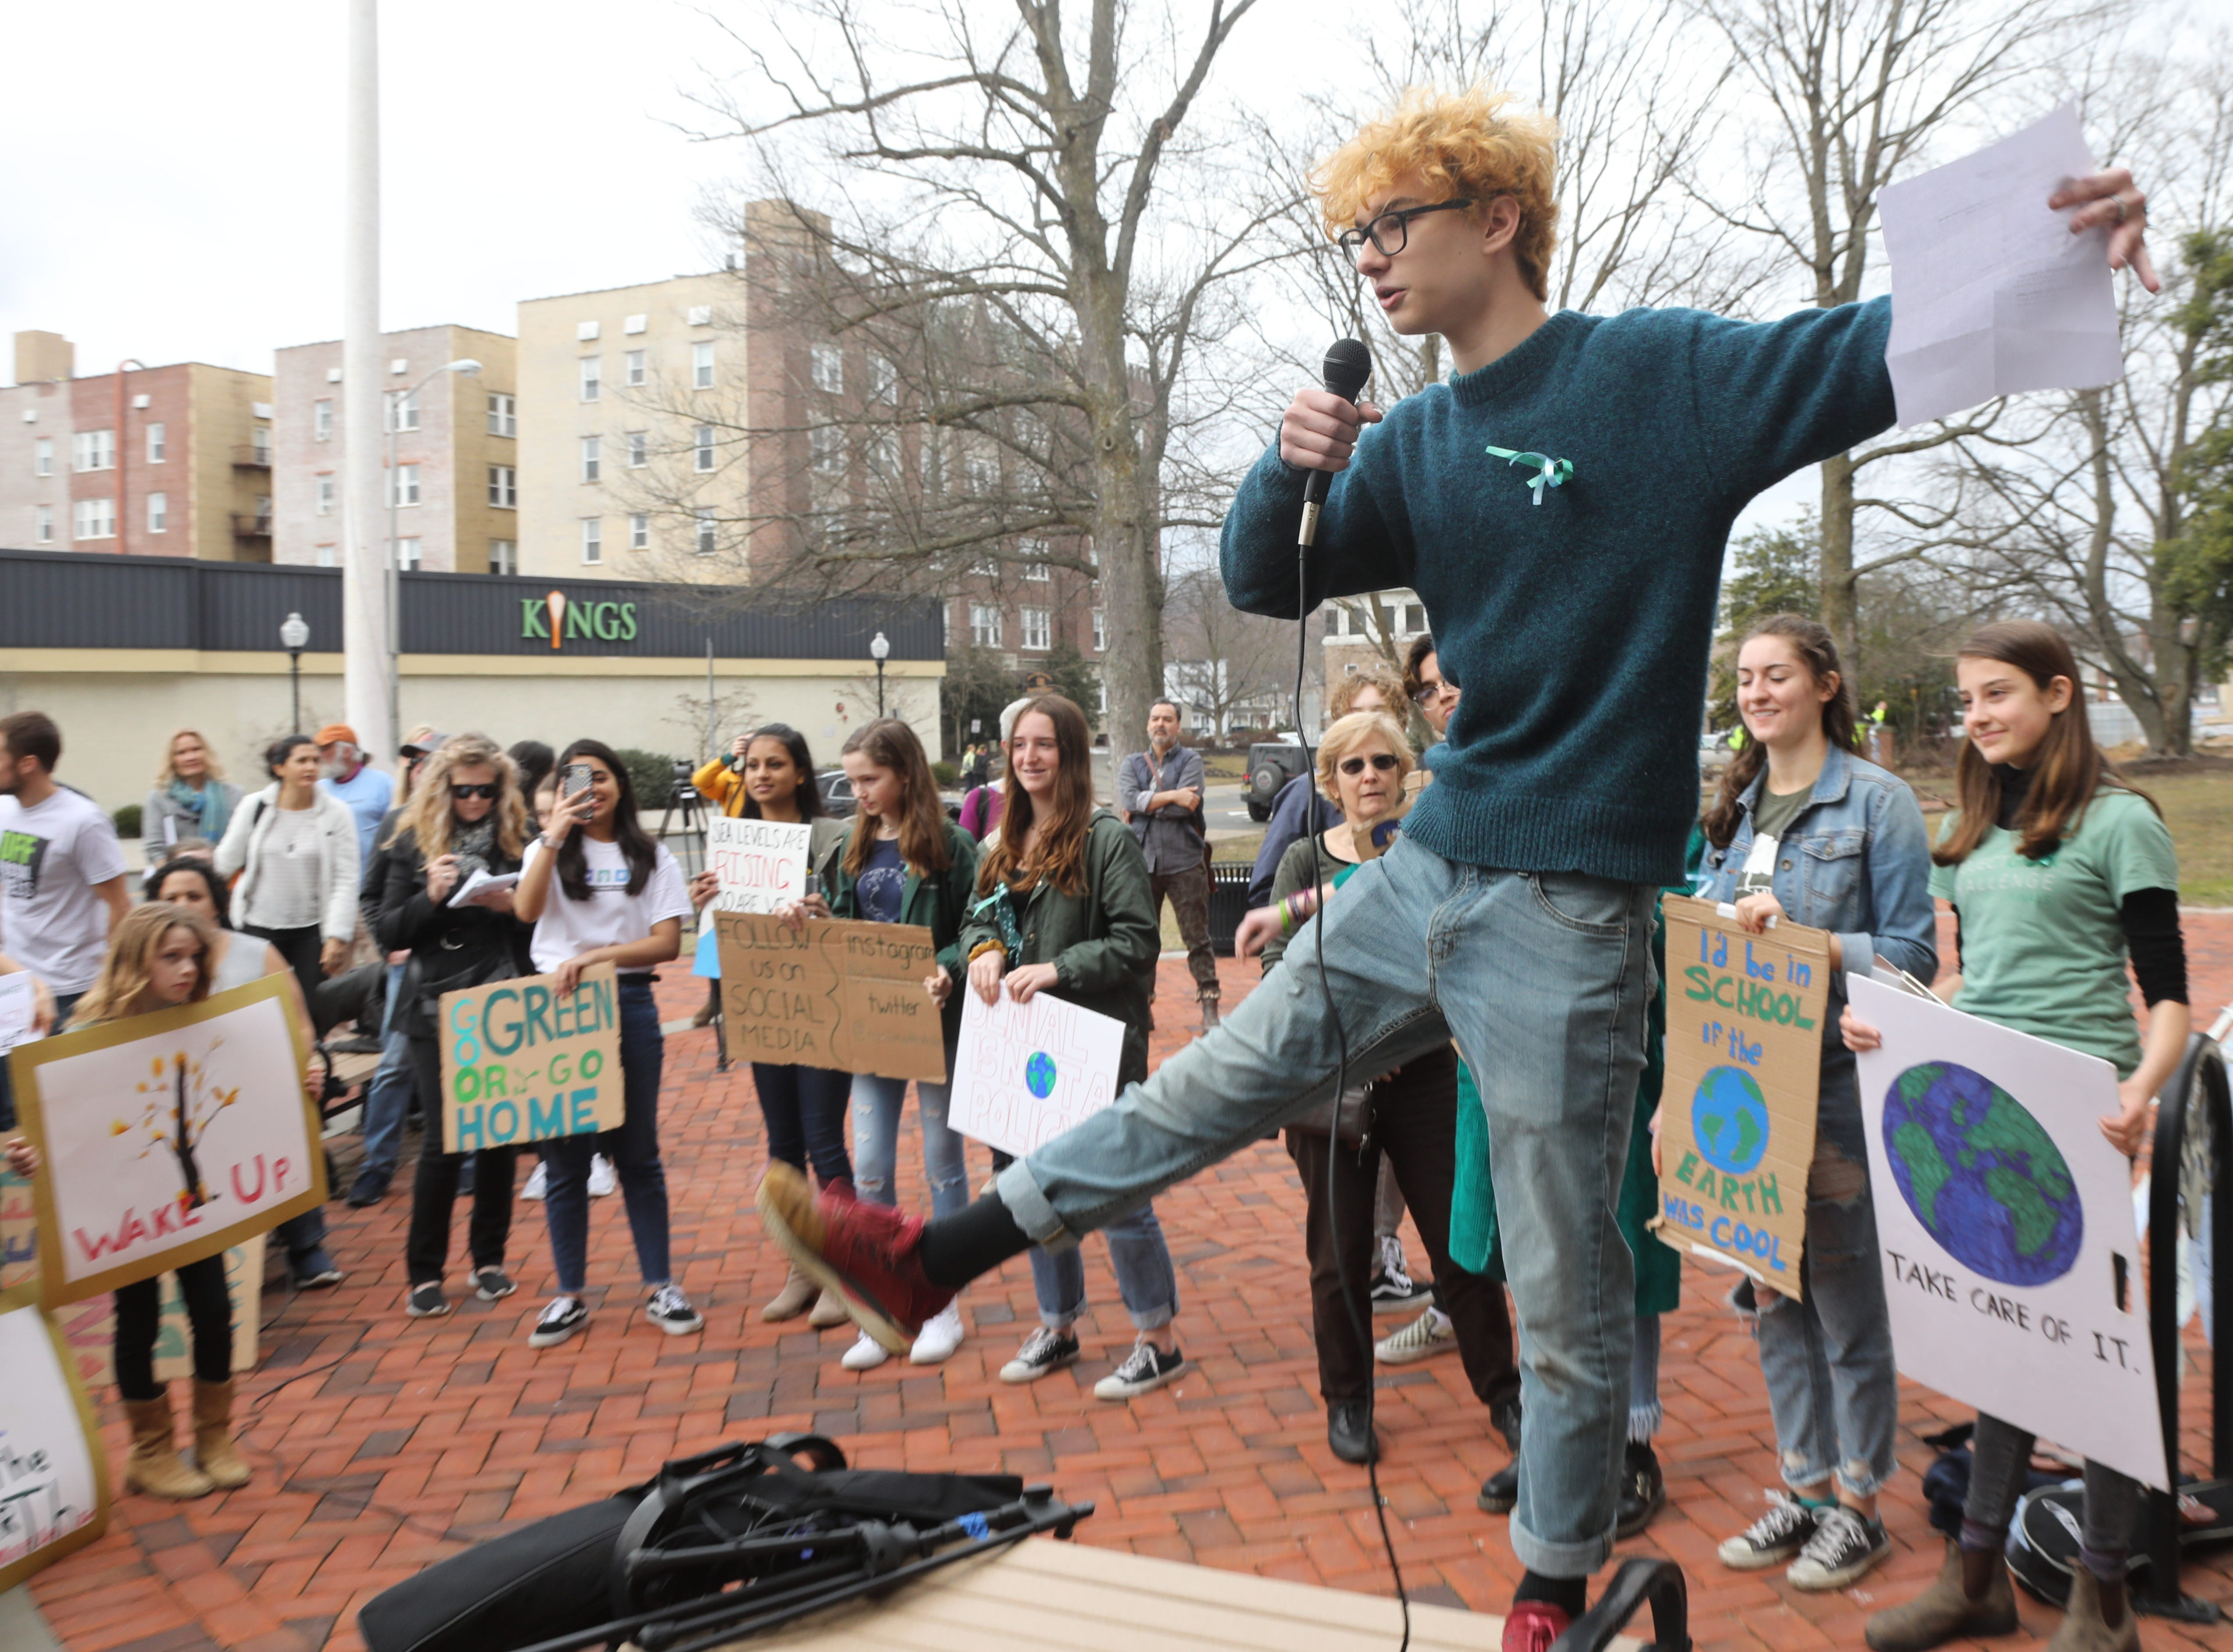 Nussy Andrews 17 of Long Valley and a student at the Morris County School of Technology tries to lose up the crowd as they prepared to chant their demands to address climate change.